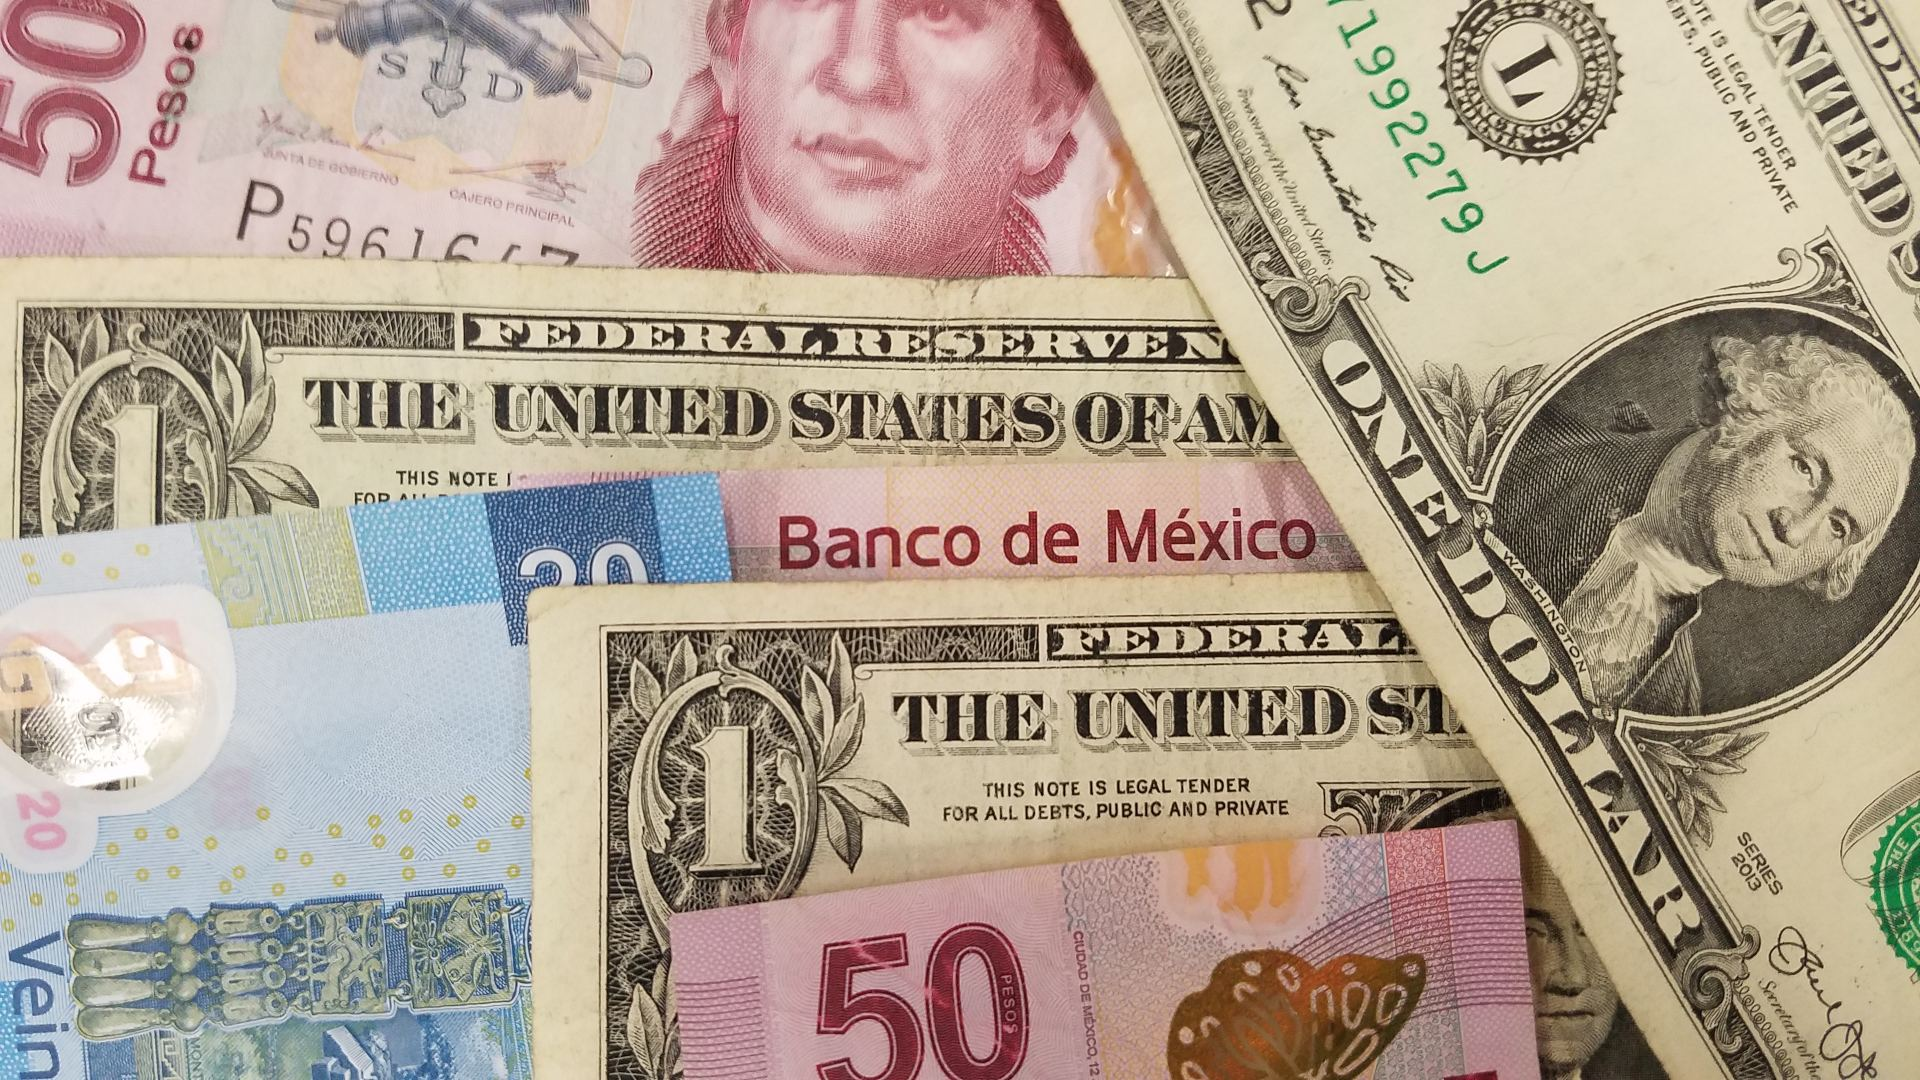 File image of Mexican pesos and American dollars.